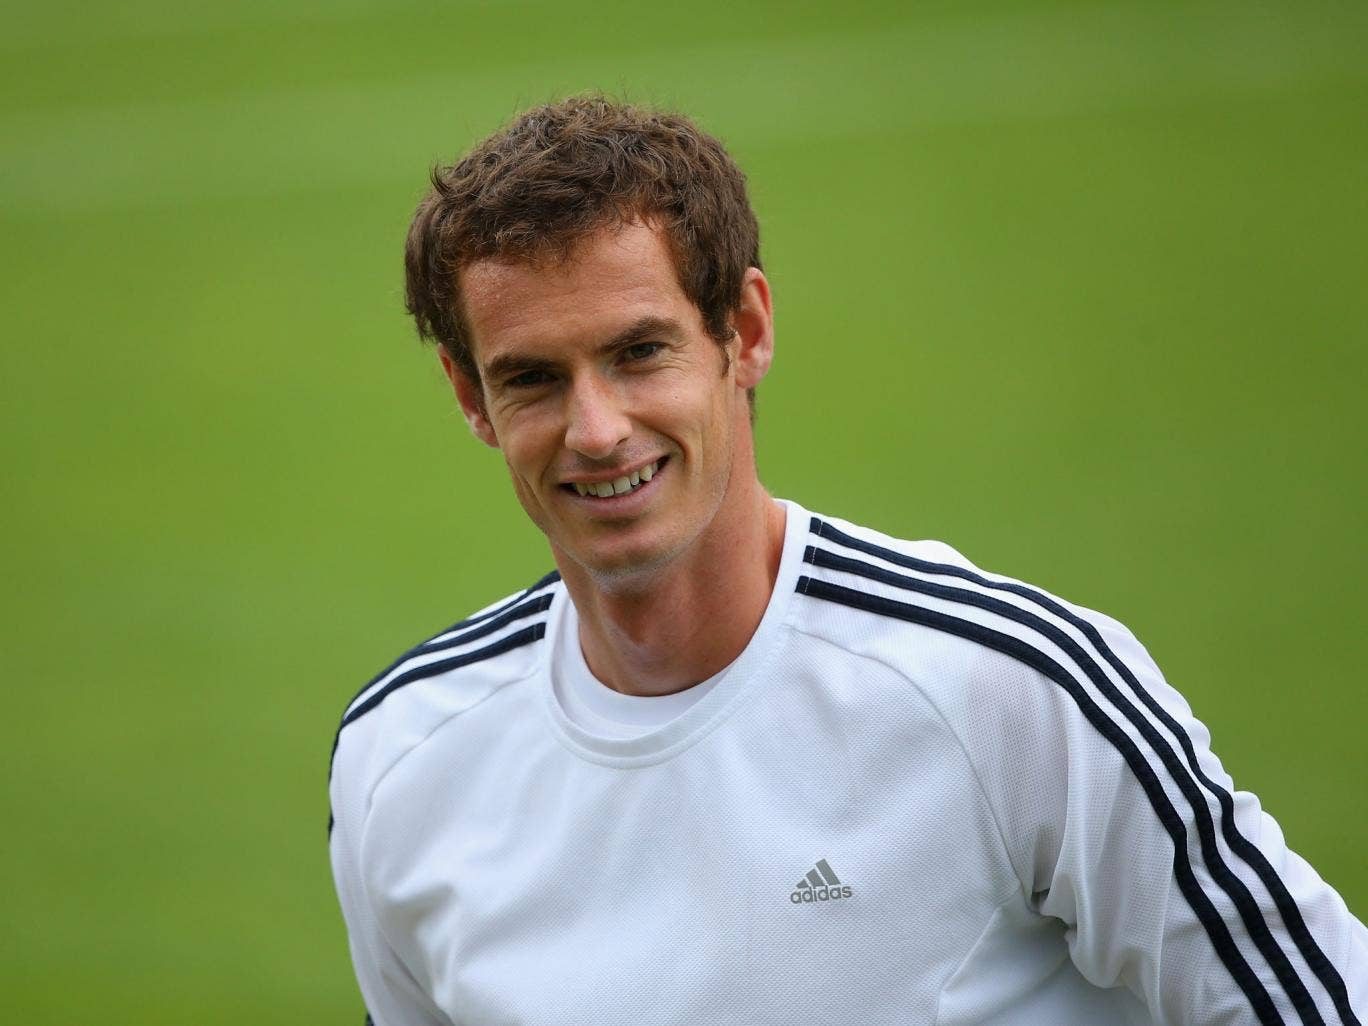 Andy Murray: Seeded second for Wimbledon